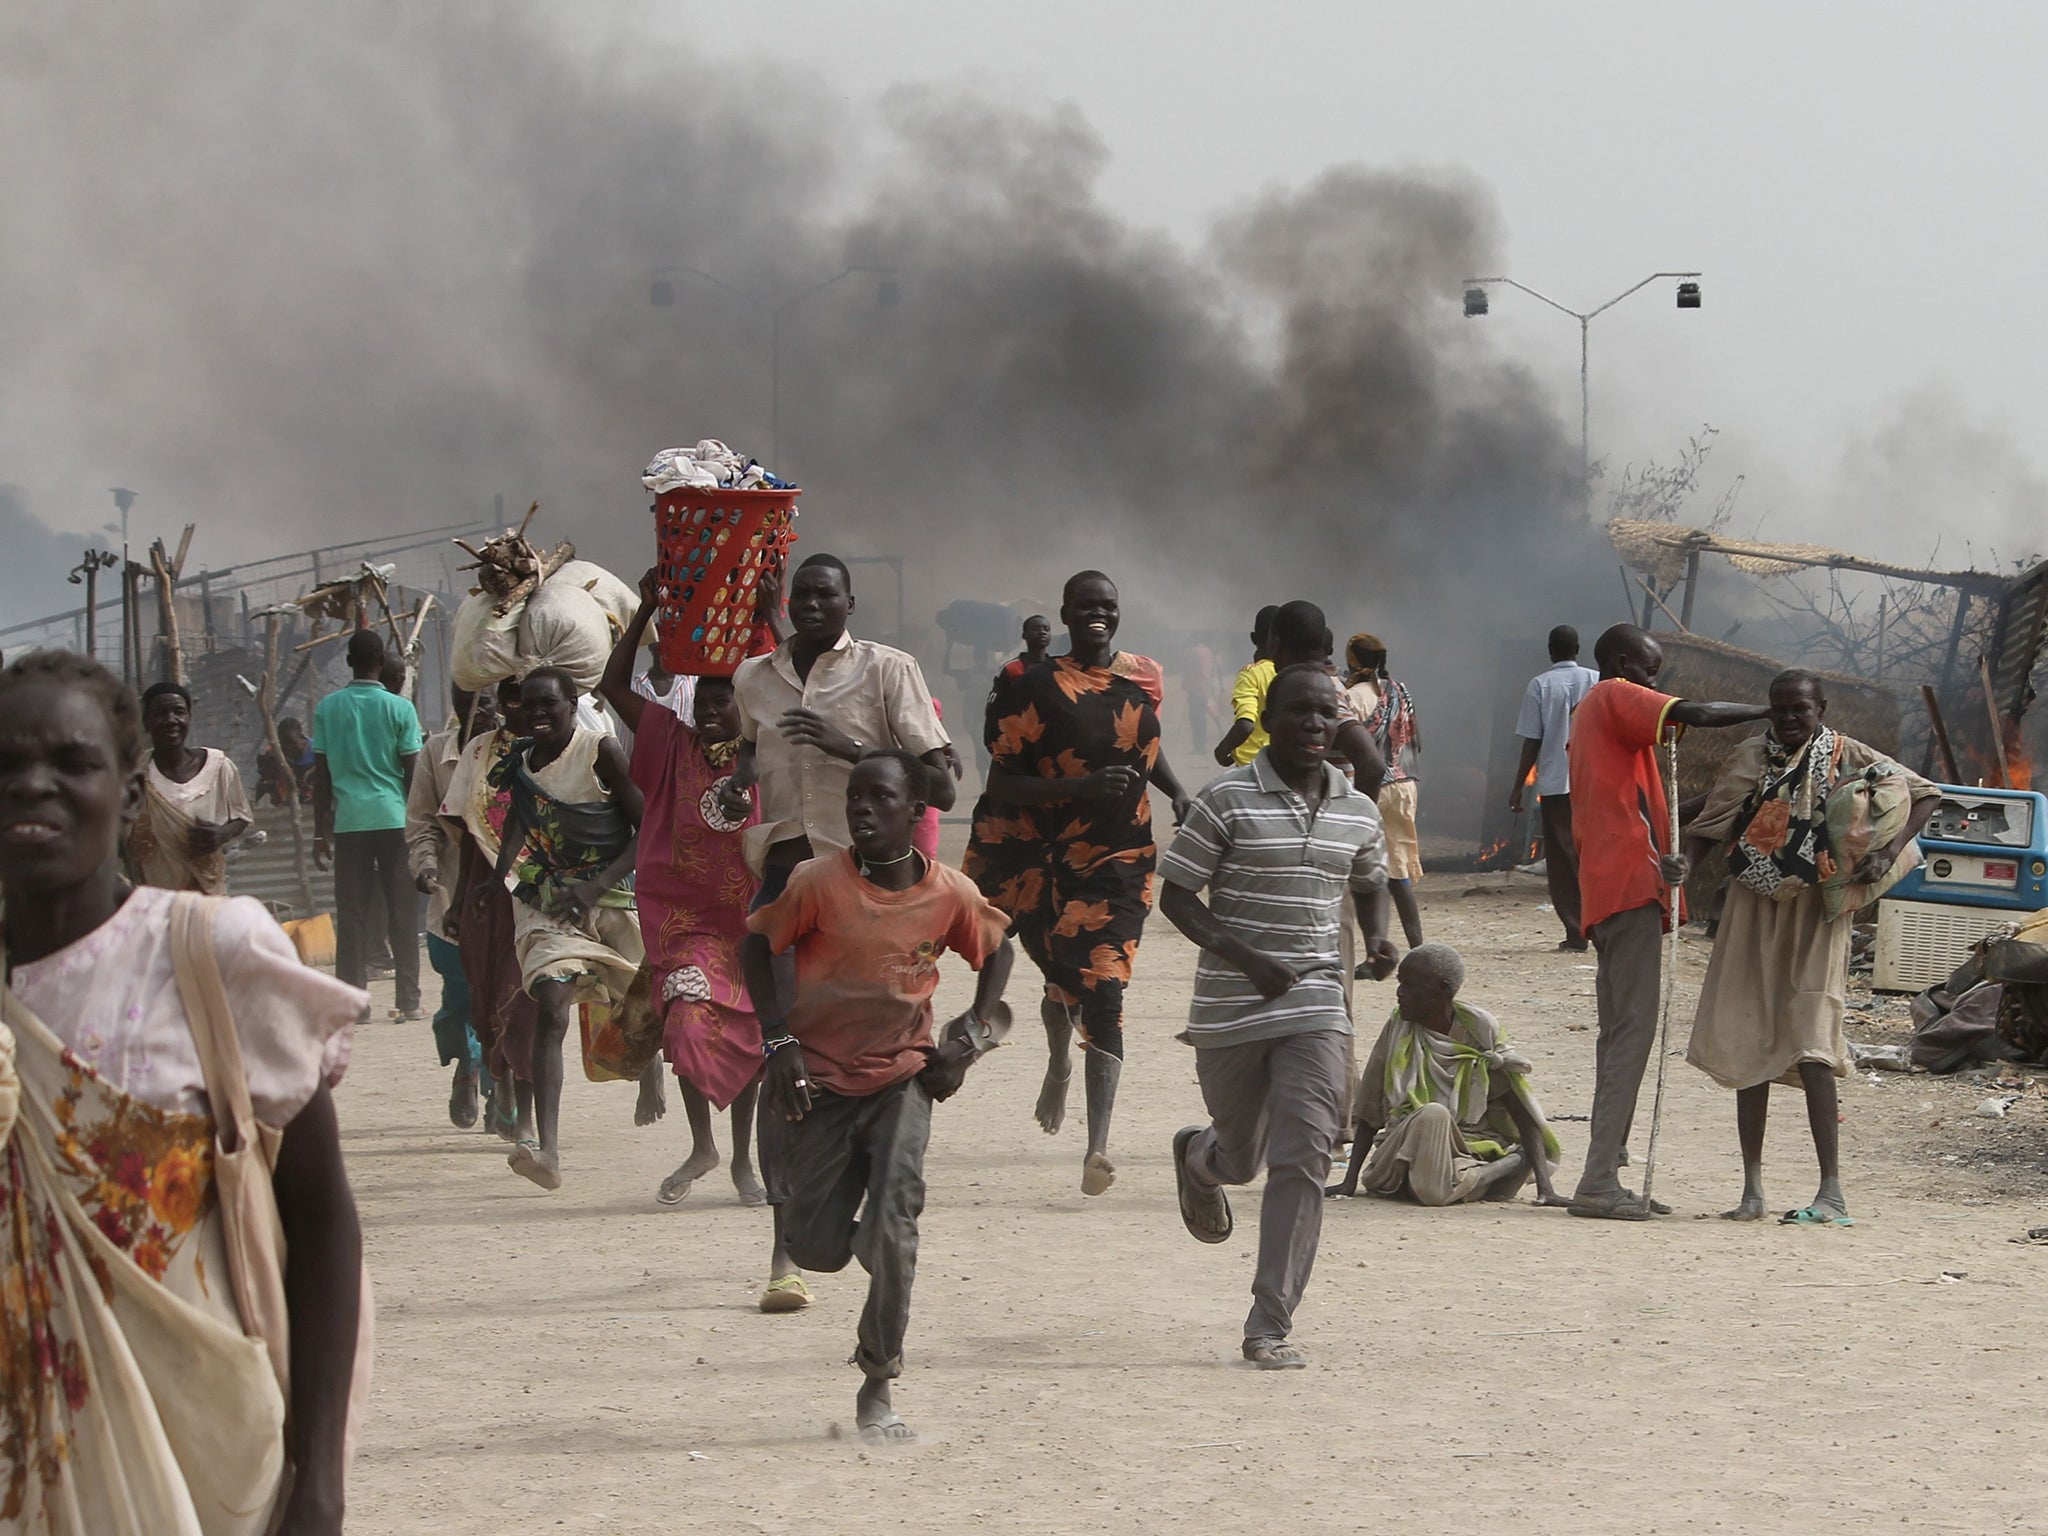 South Sudan army burned civilians alive, ran them over and swung children into tree trunks, says Amnesty